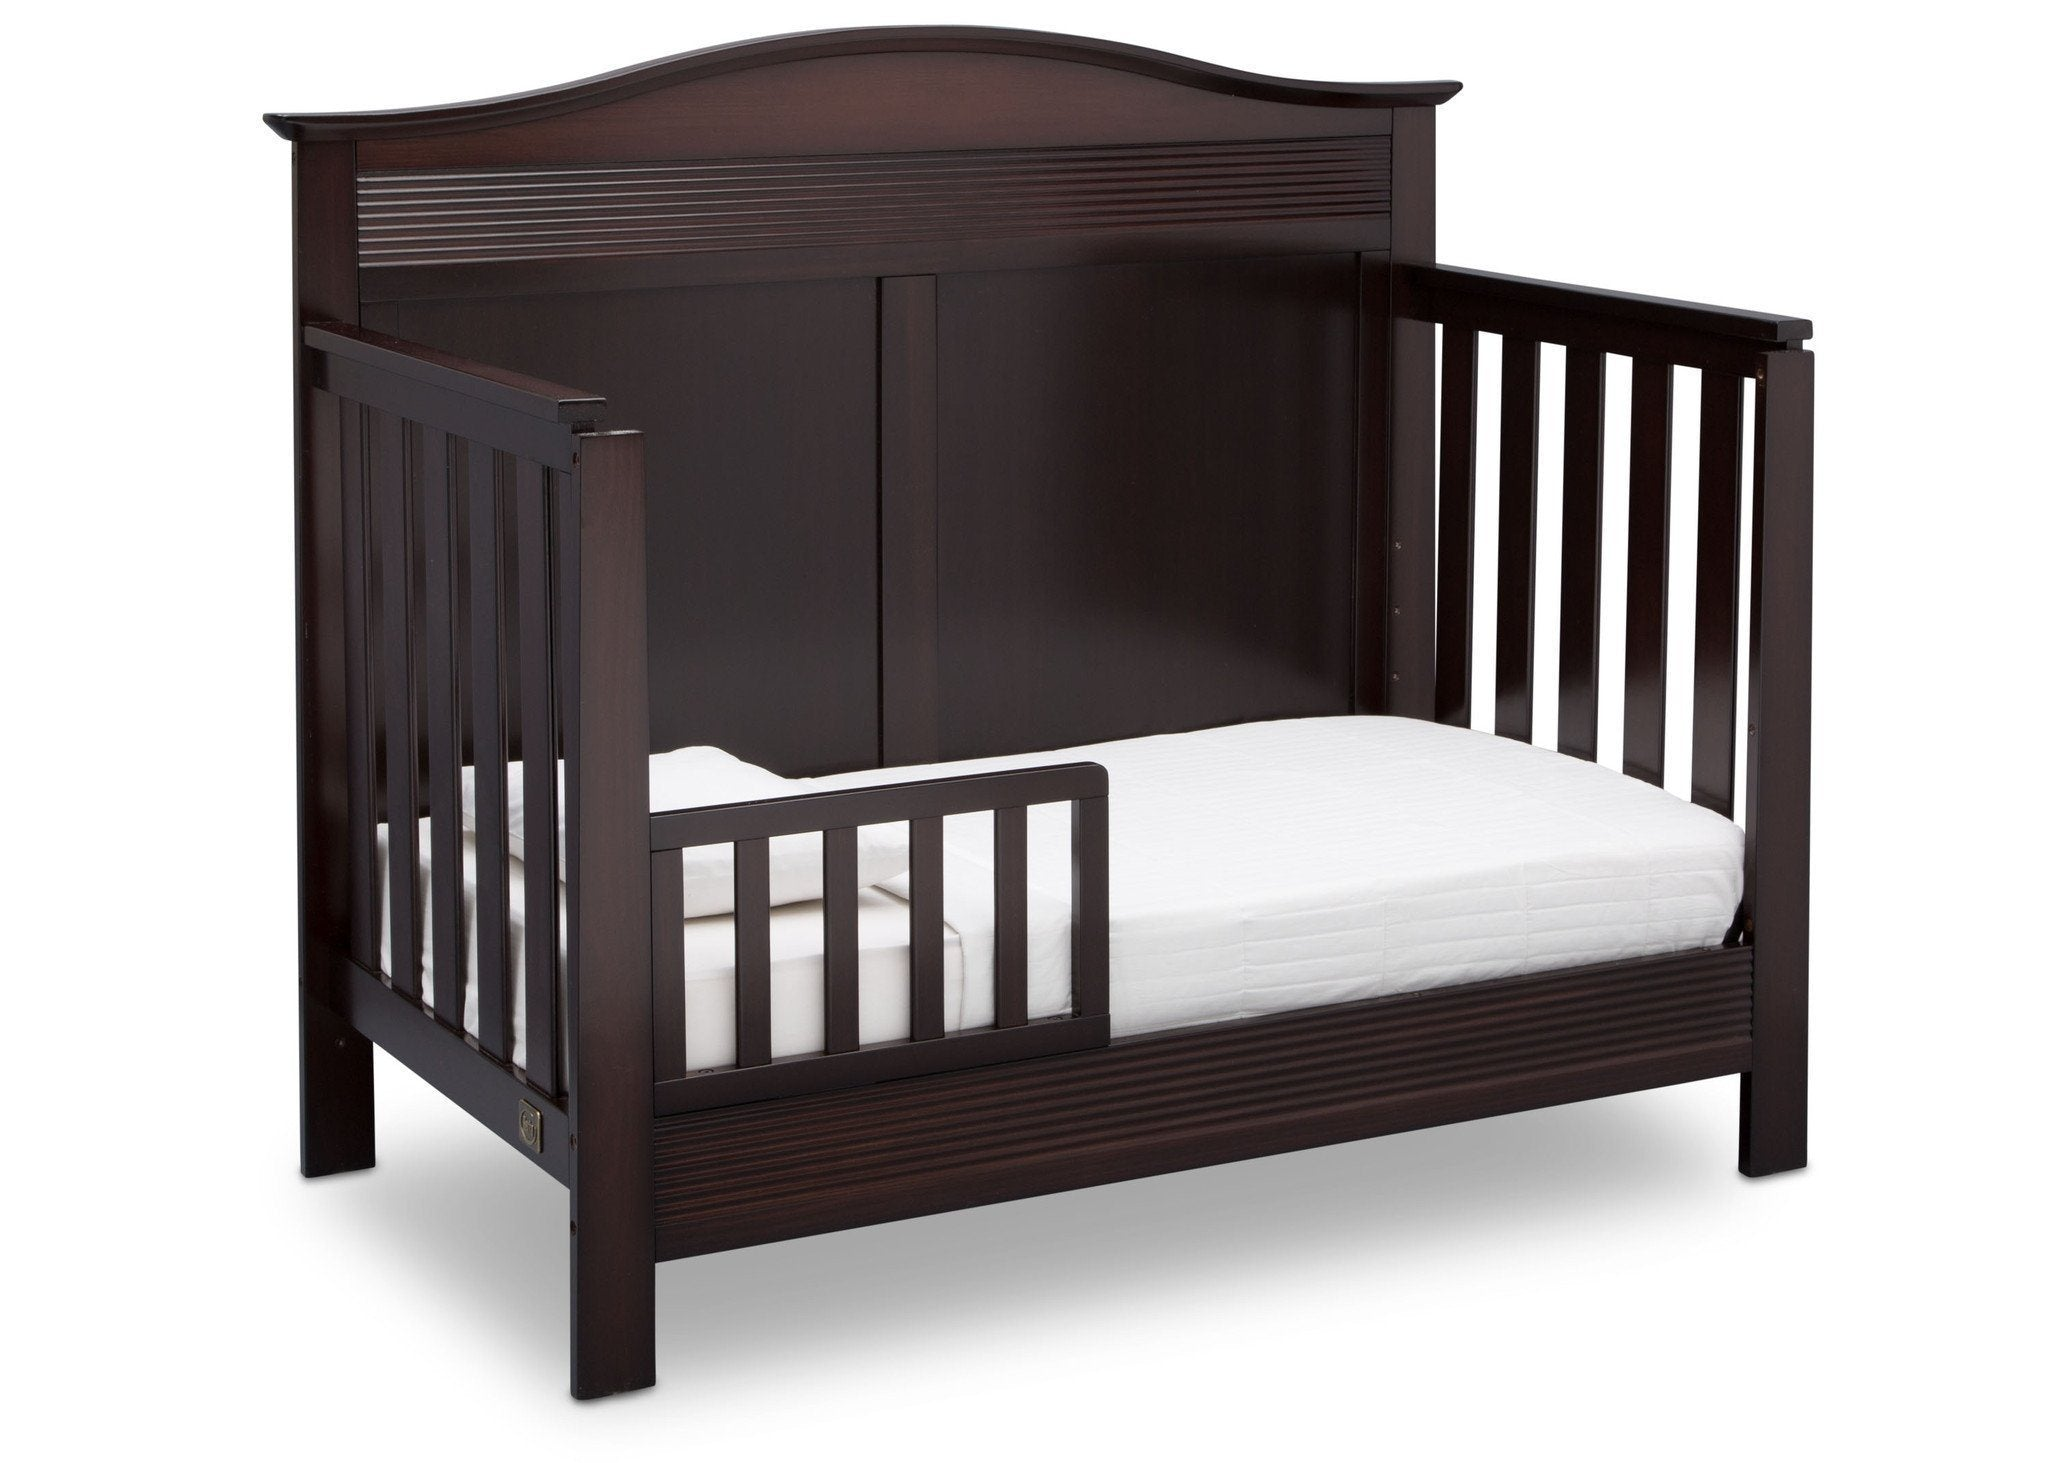 Serta Dark Chocolate (207) Barrett 4-in-1 Convertible Crib, Right Toddler Bed View c3c